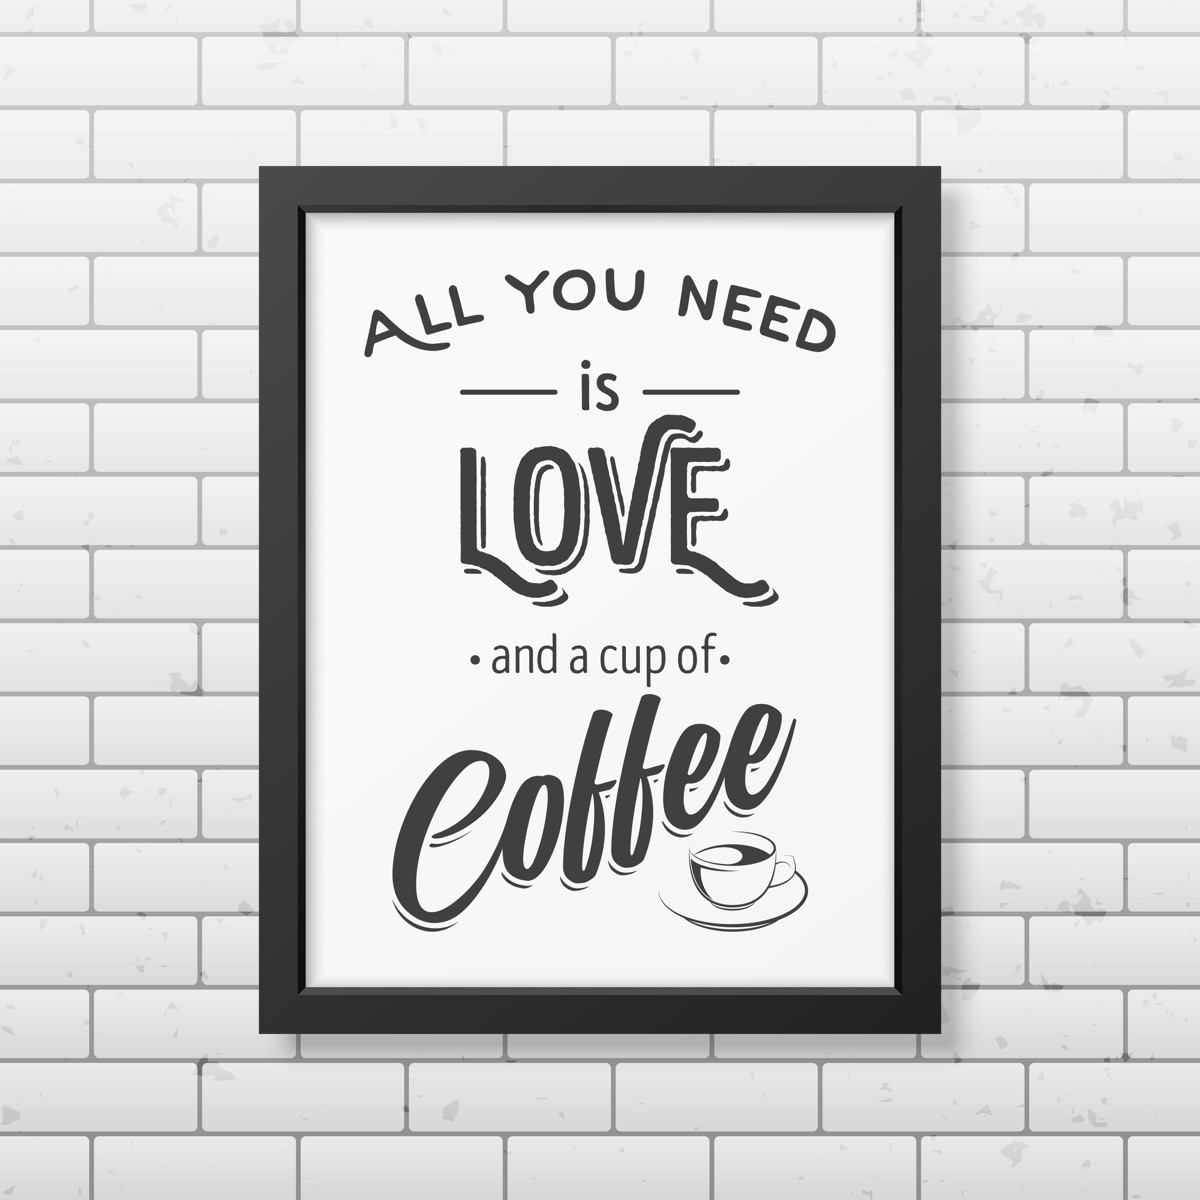 All you need is love and a cup of coffee - Quote typographical Background in realistic square black frame on the brick wall background.